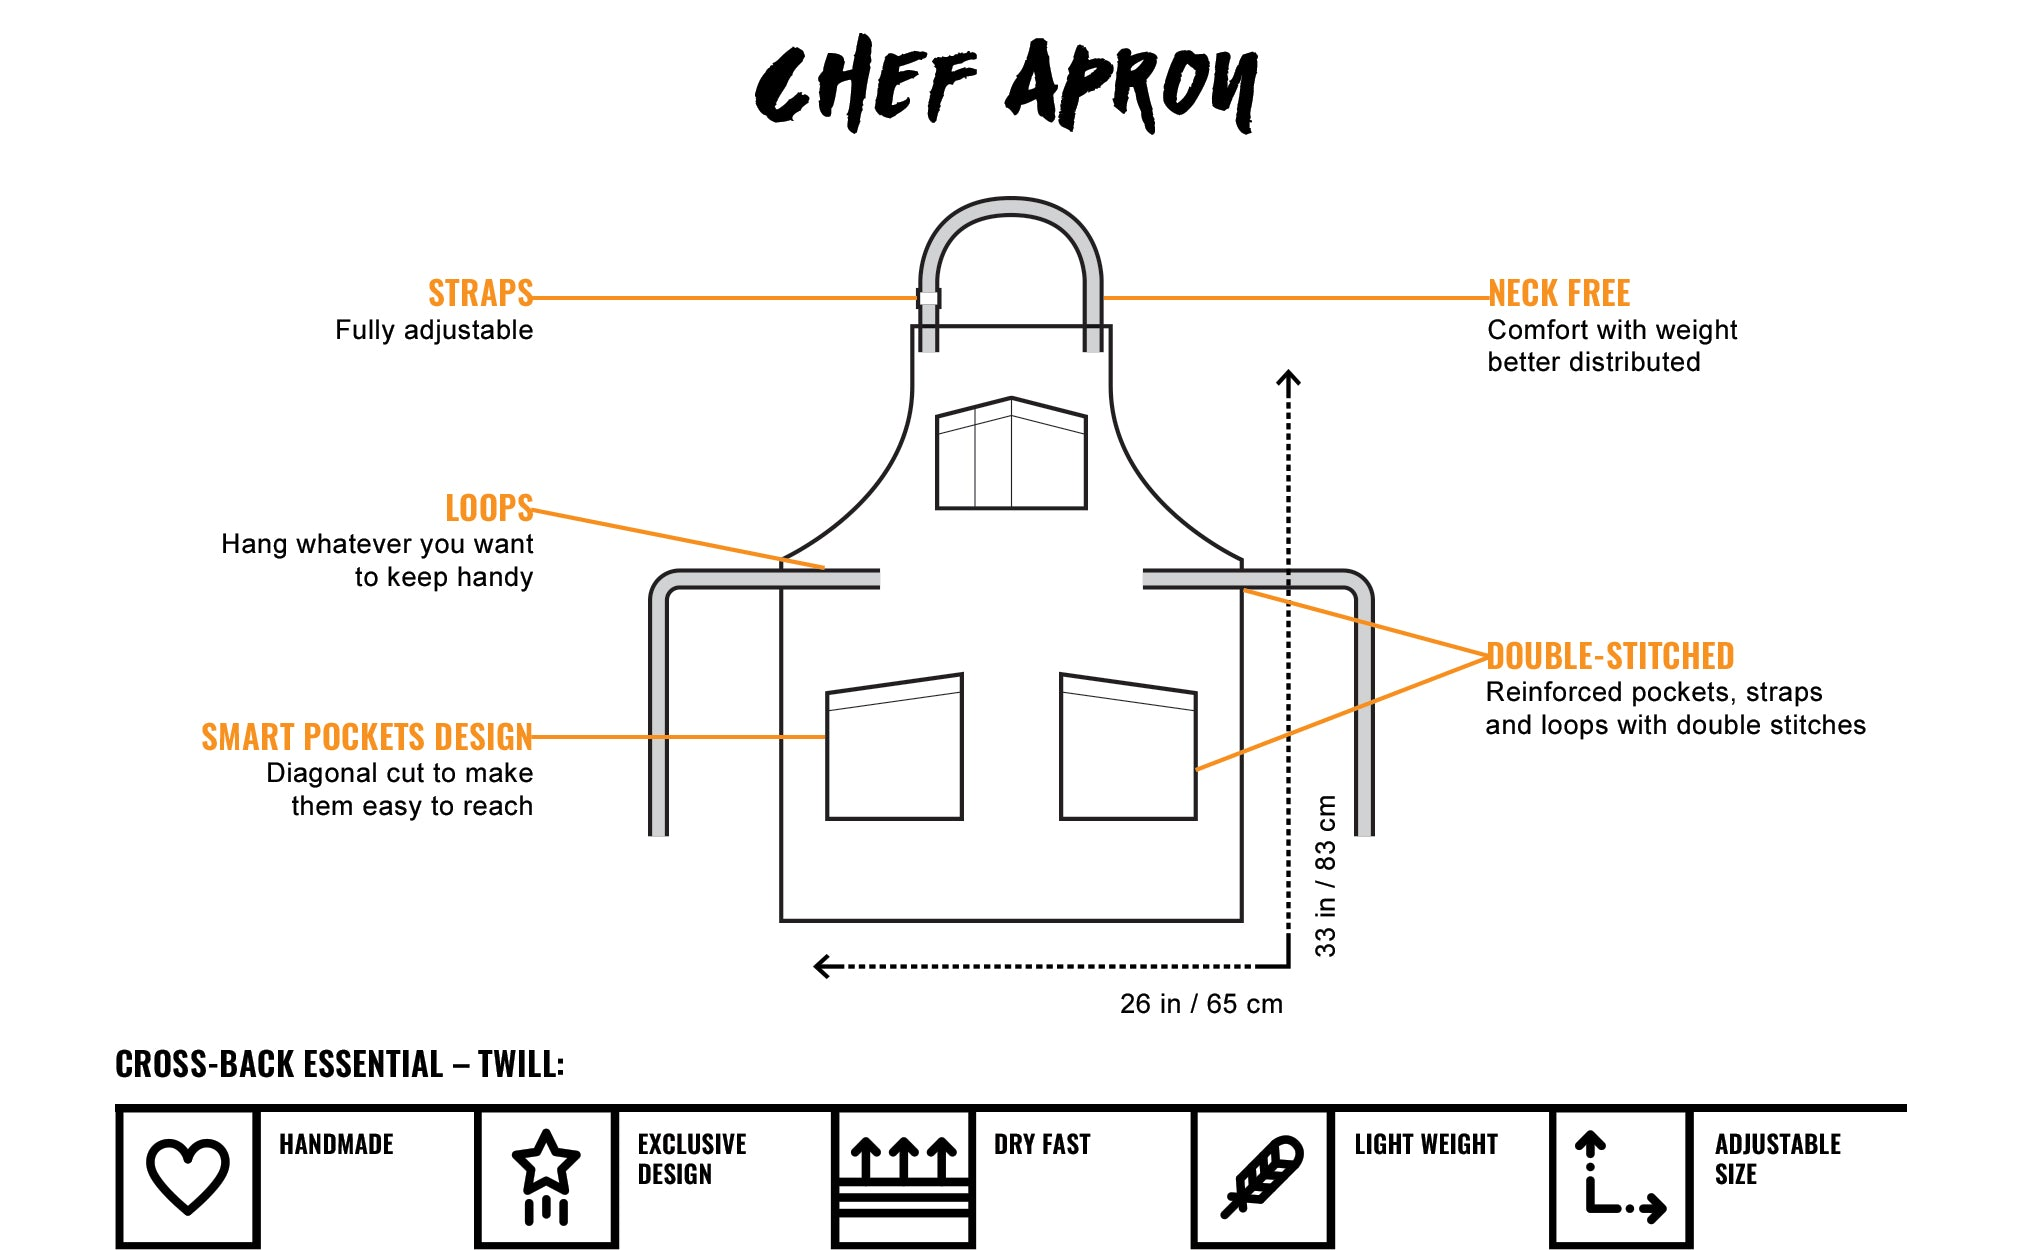 Under NY Sky Chef Apron – Feature Chart